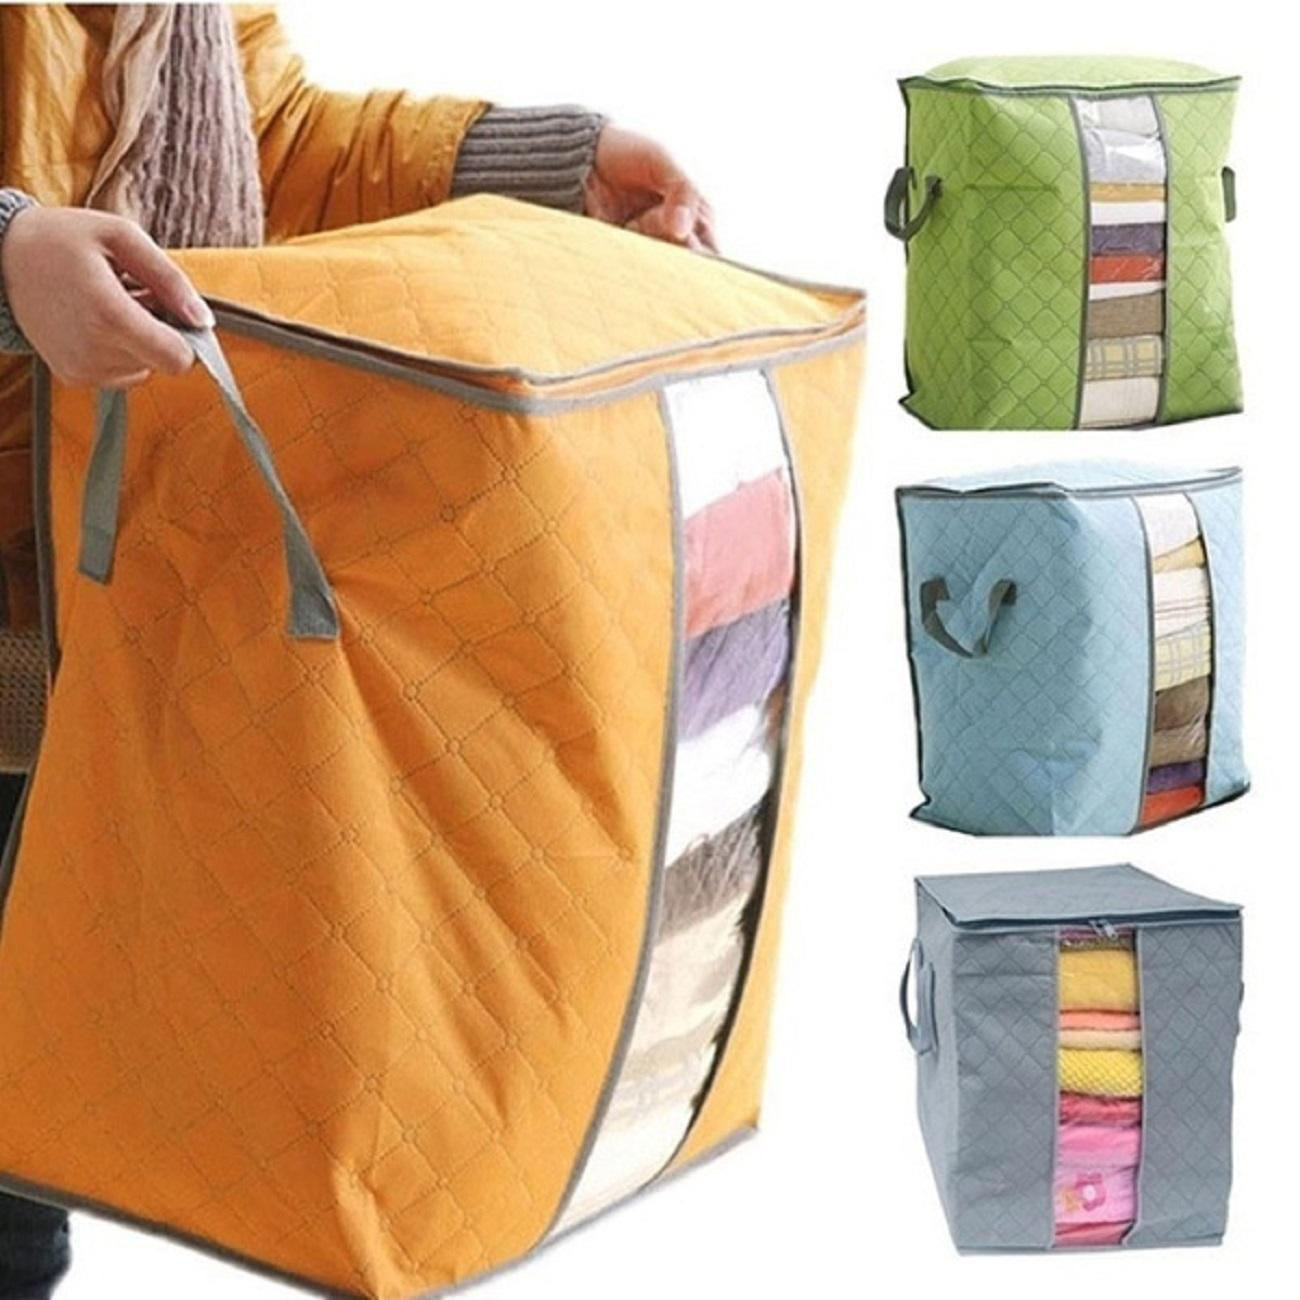 Details about Folding Bamboo Charcoal Clothes Storage Bag Zipper Blanket Closet Organizer